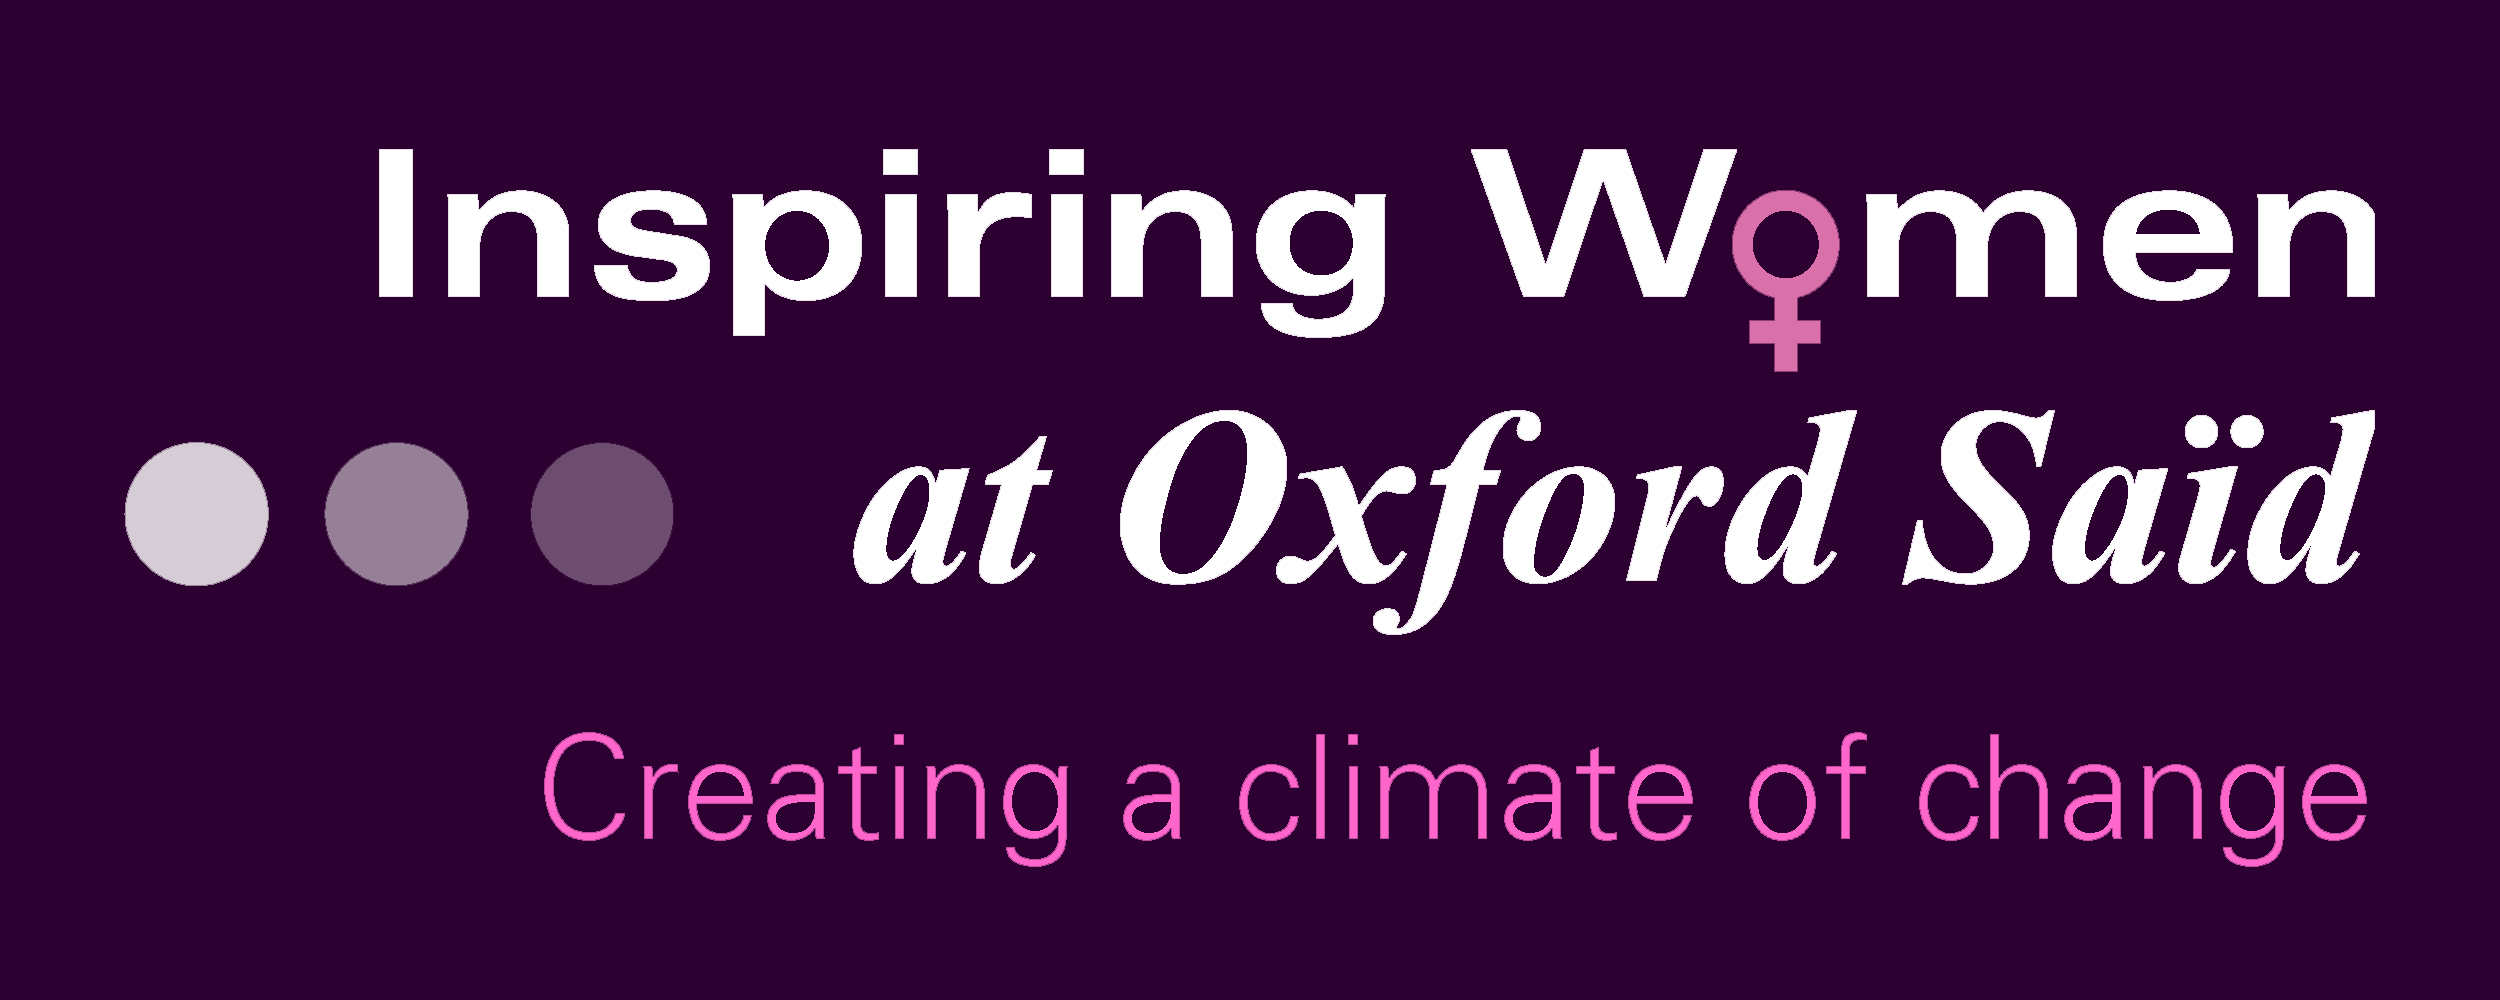 Inspiring Women at Oxford Saïd: Creating a climate of change